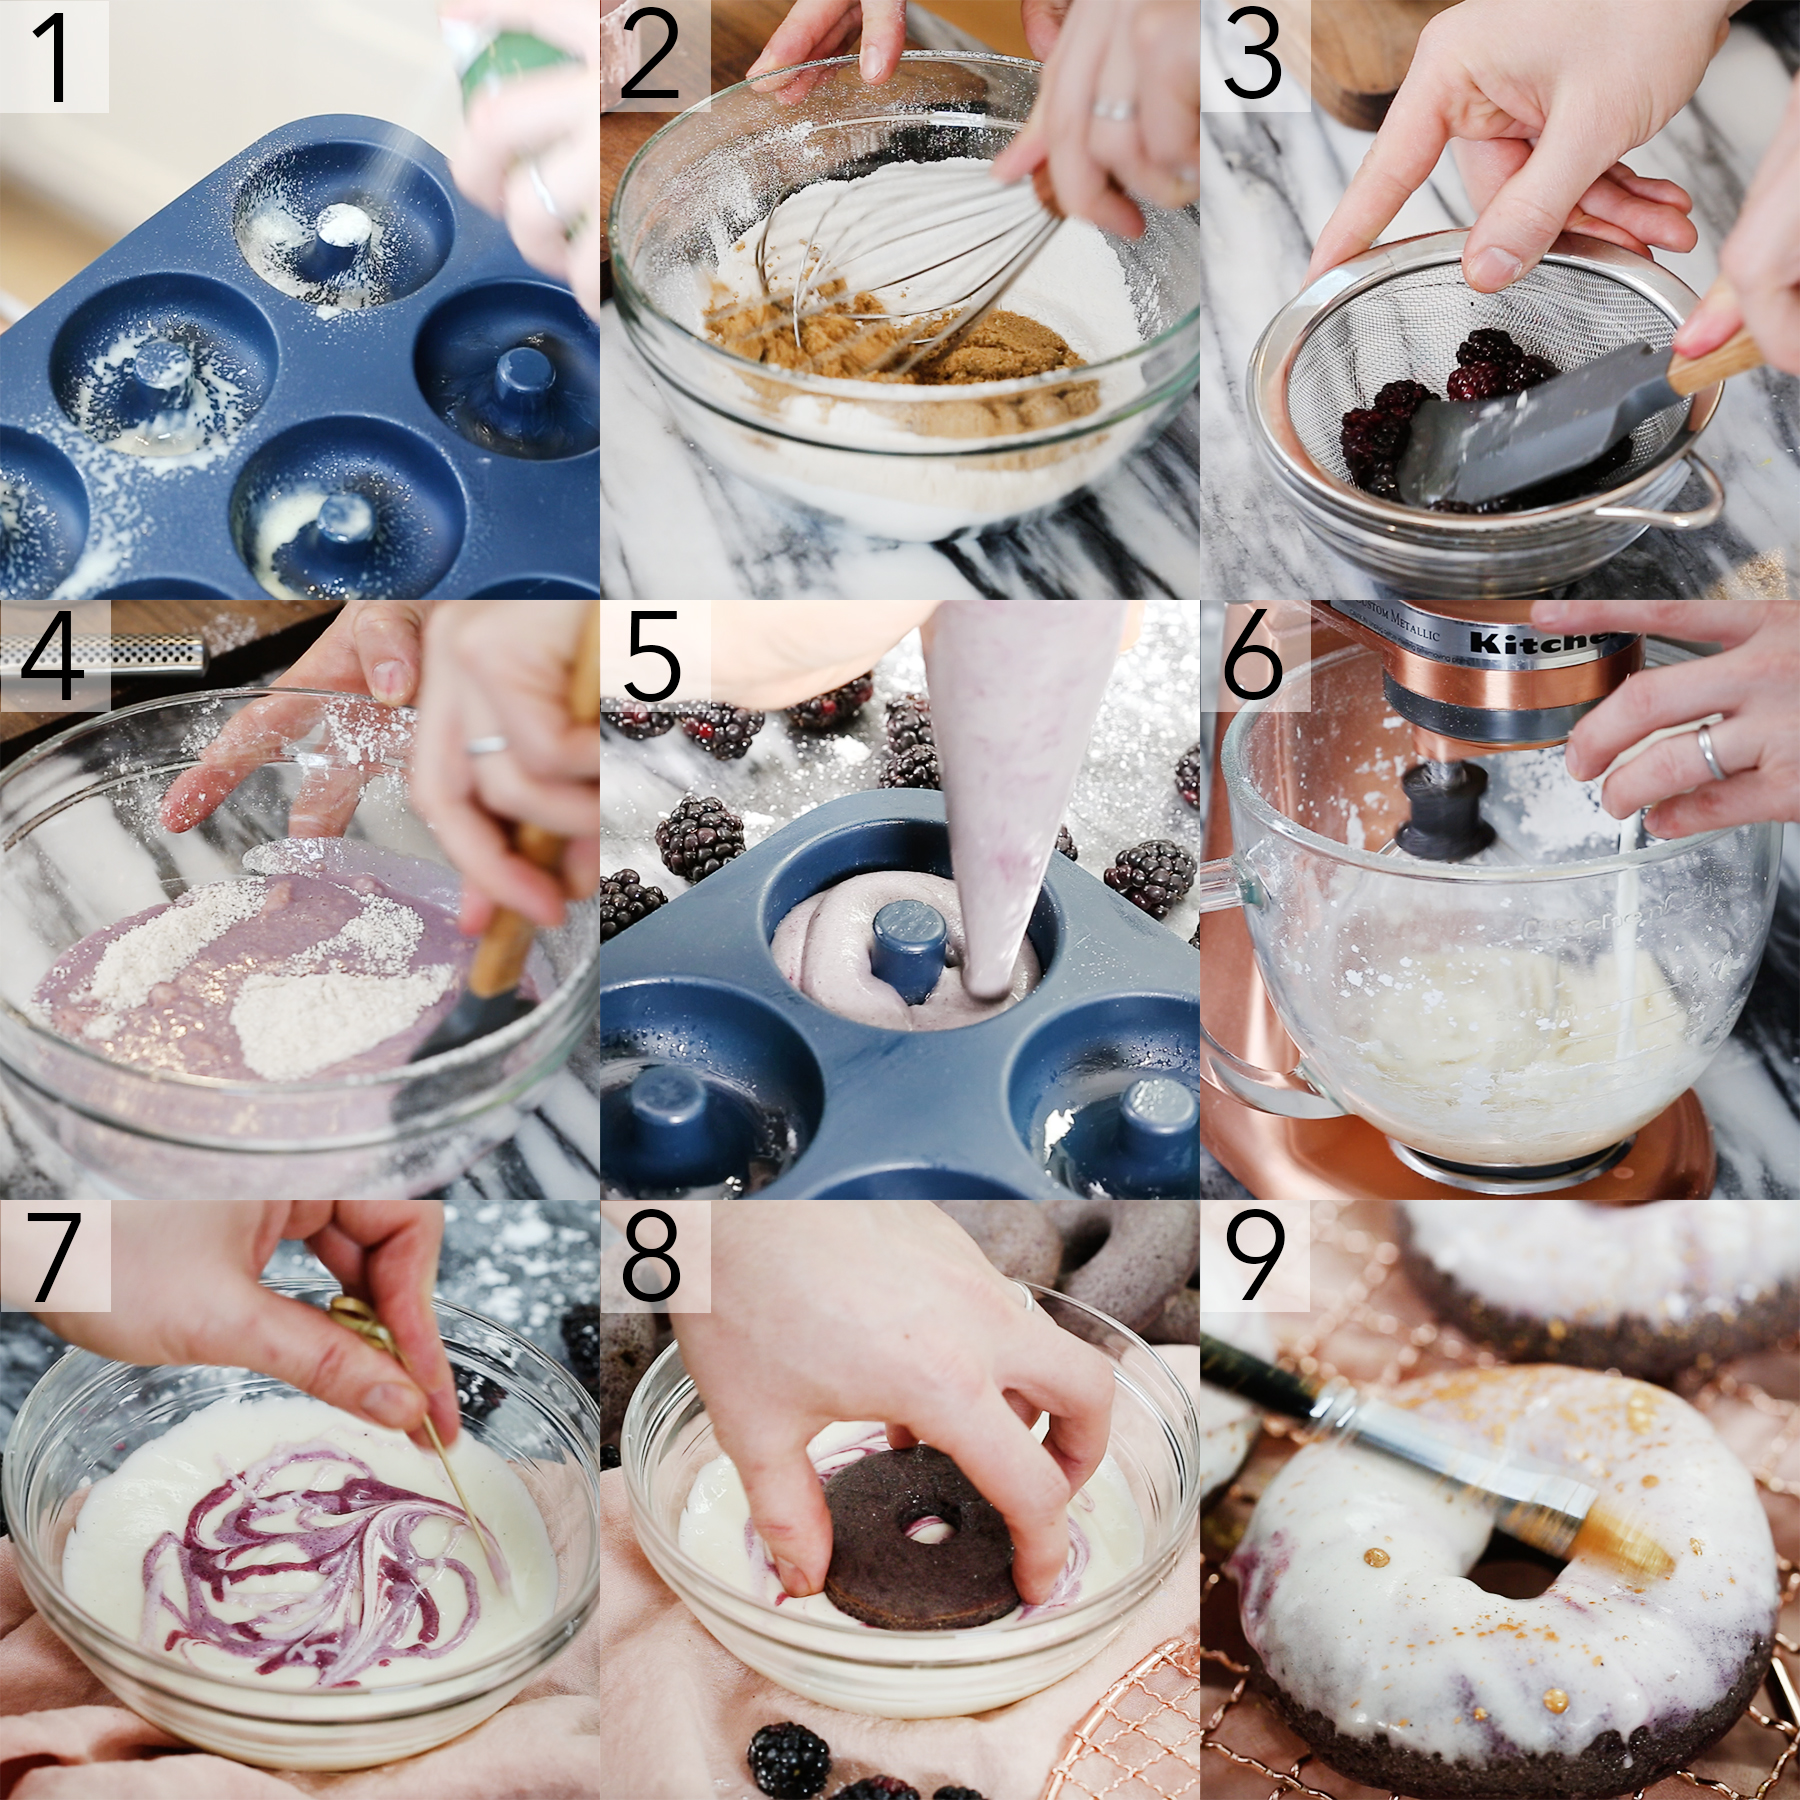 A photo collage showing the steps to make blackberry donuts